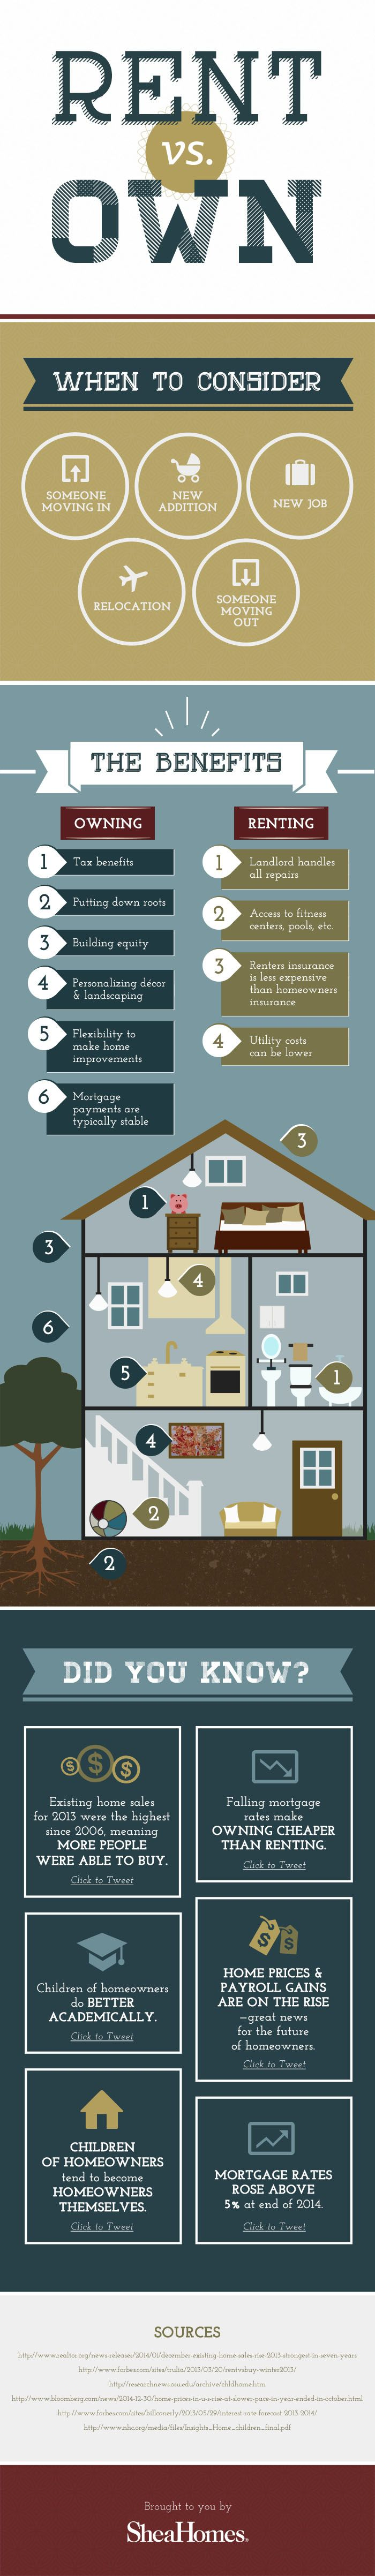 Renting vs. Owning a Home – What to Consider [INFOGRAPHIC] |